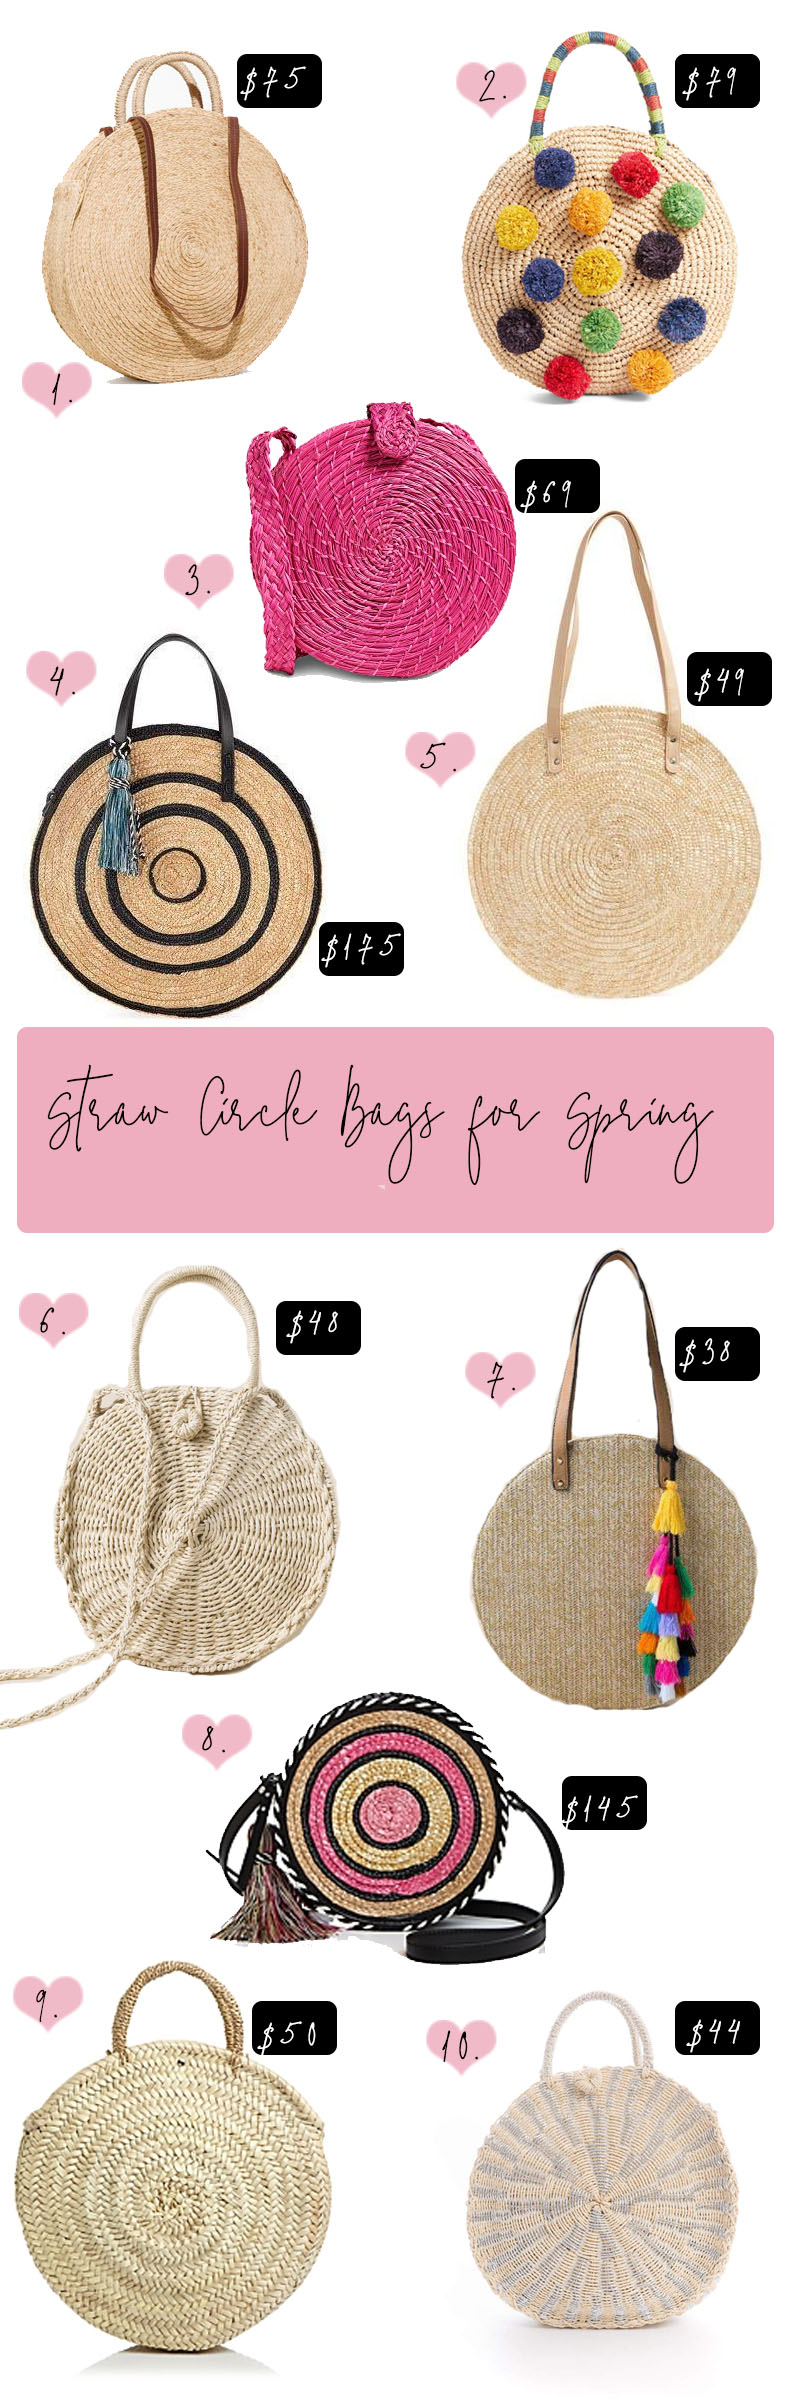 Straw Circle Bags for Spring